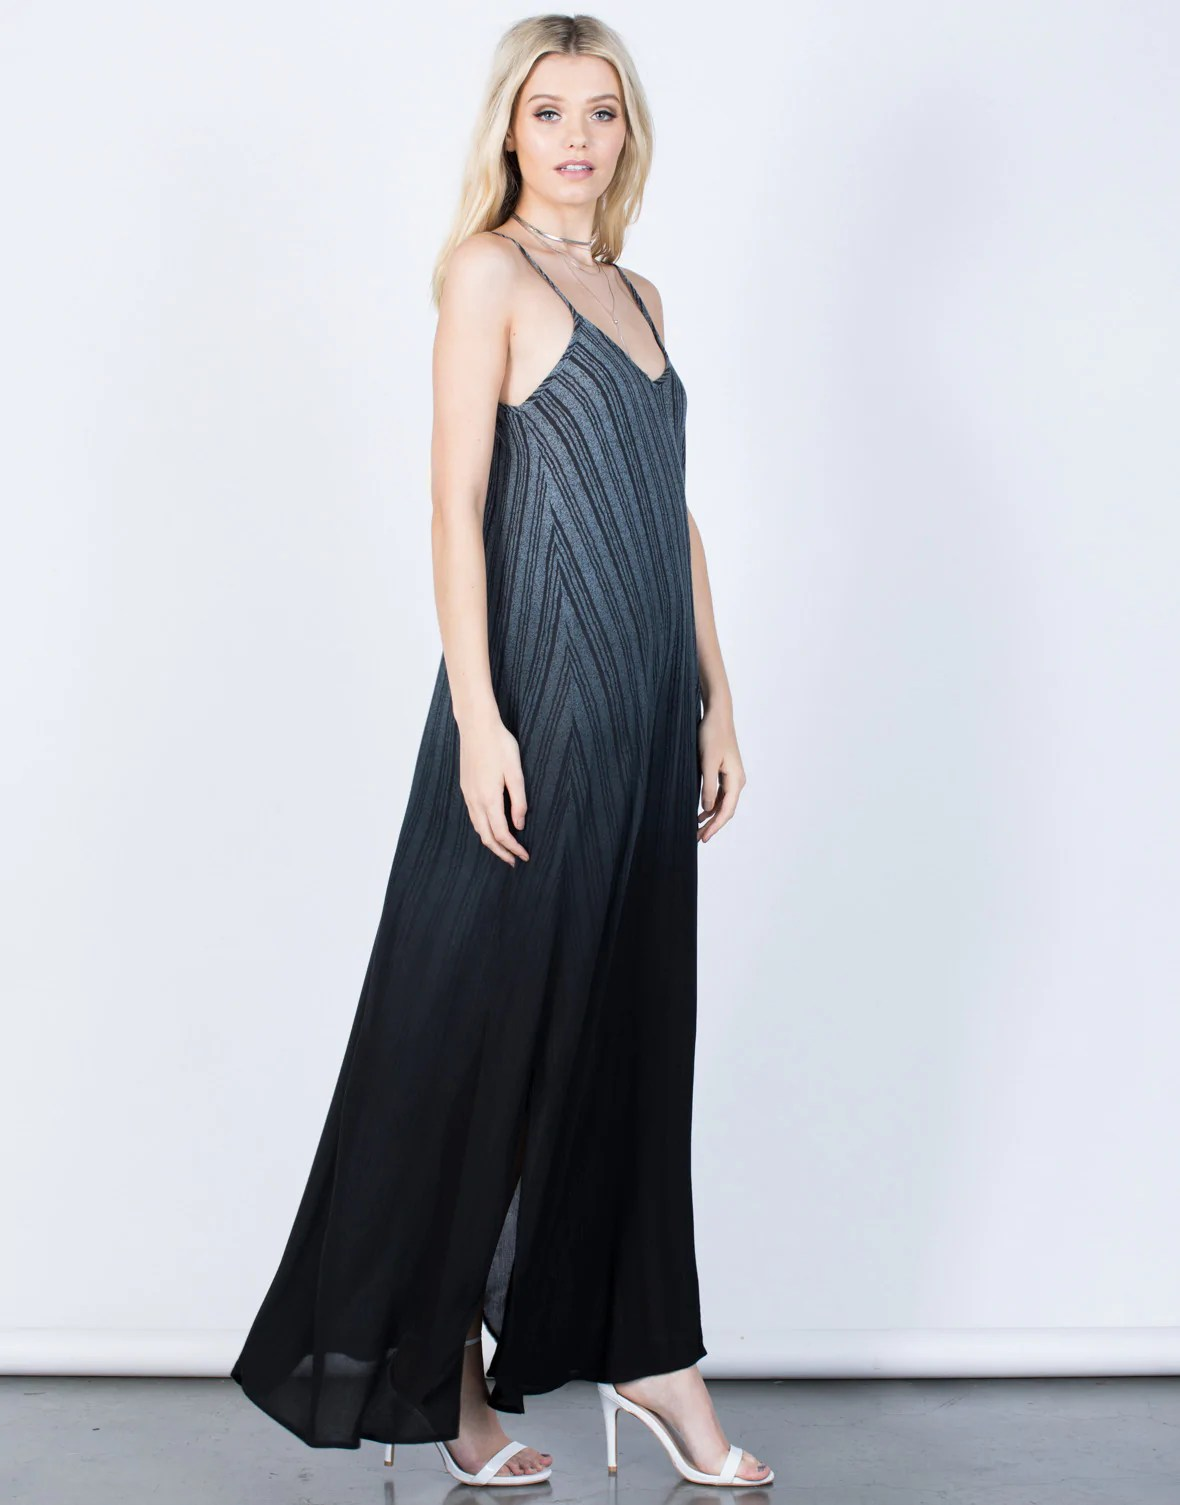 Ombre Maxi Dress - Black Tie Dye Dyed